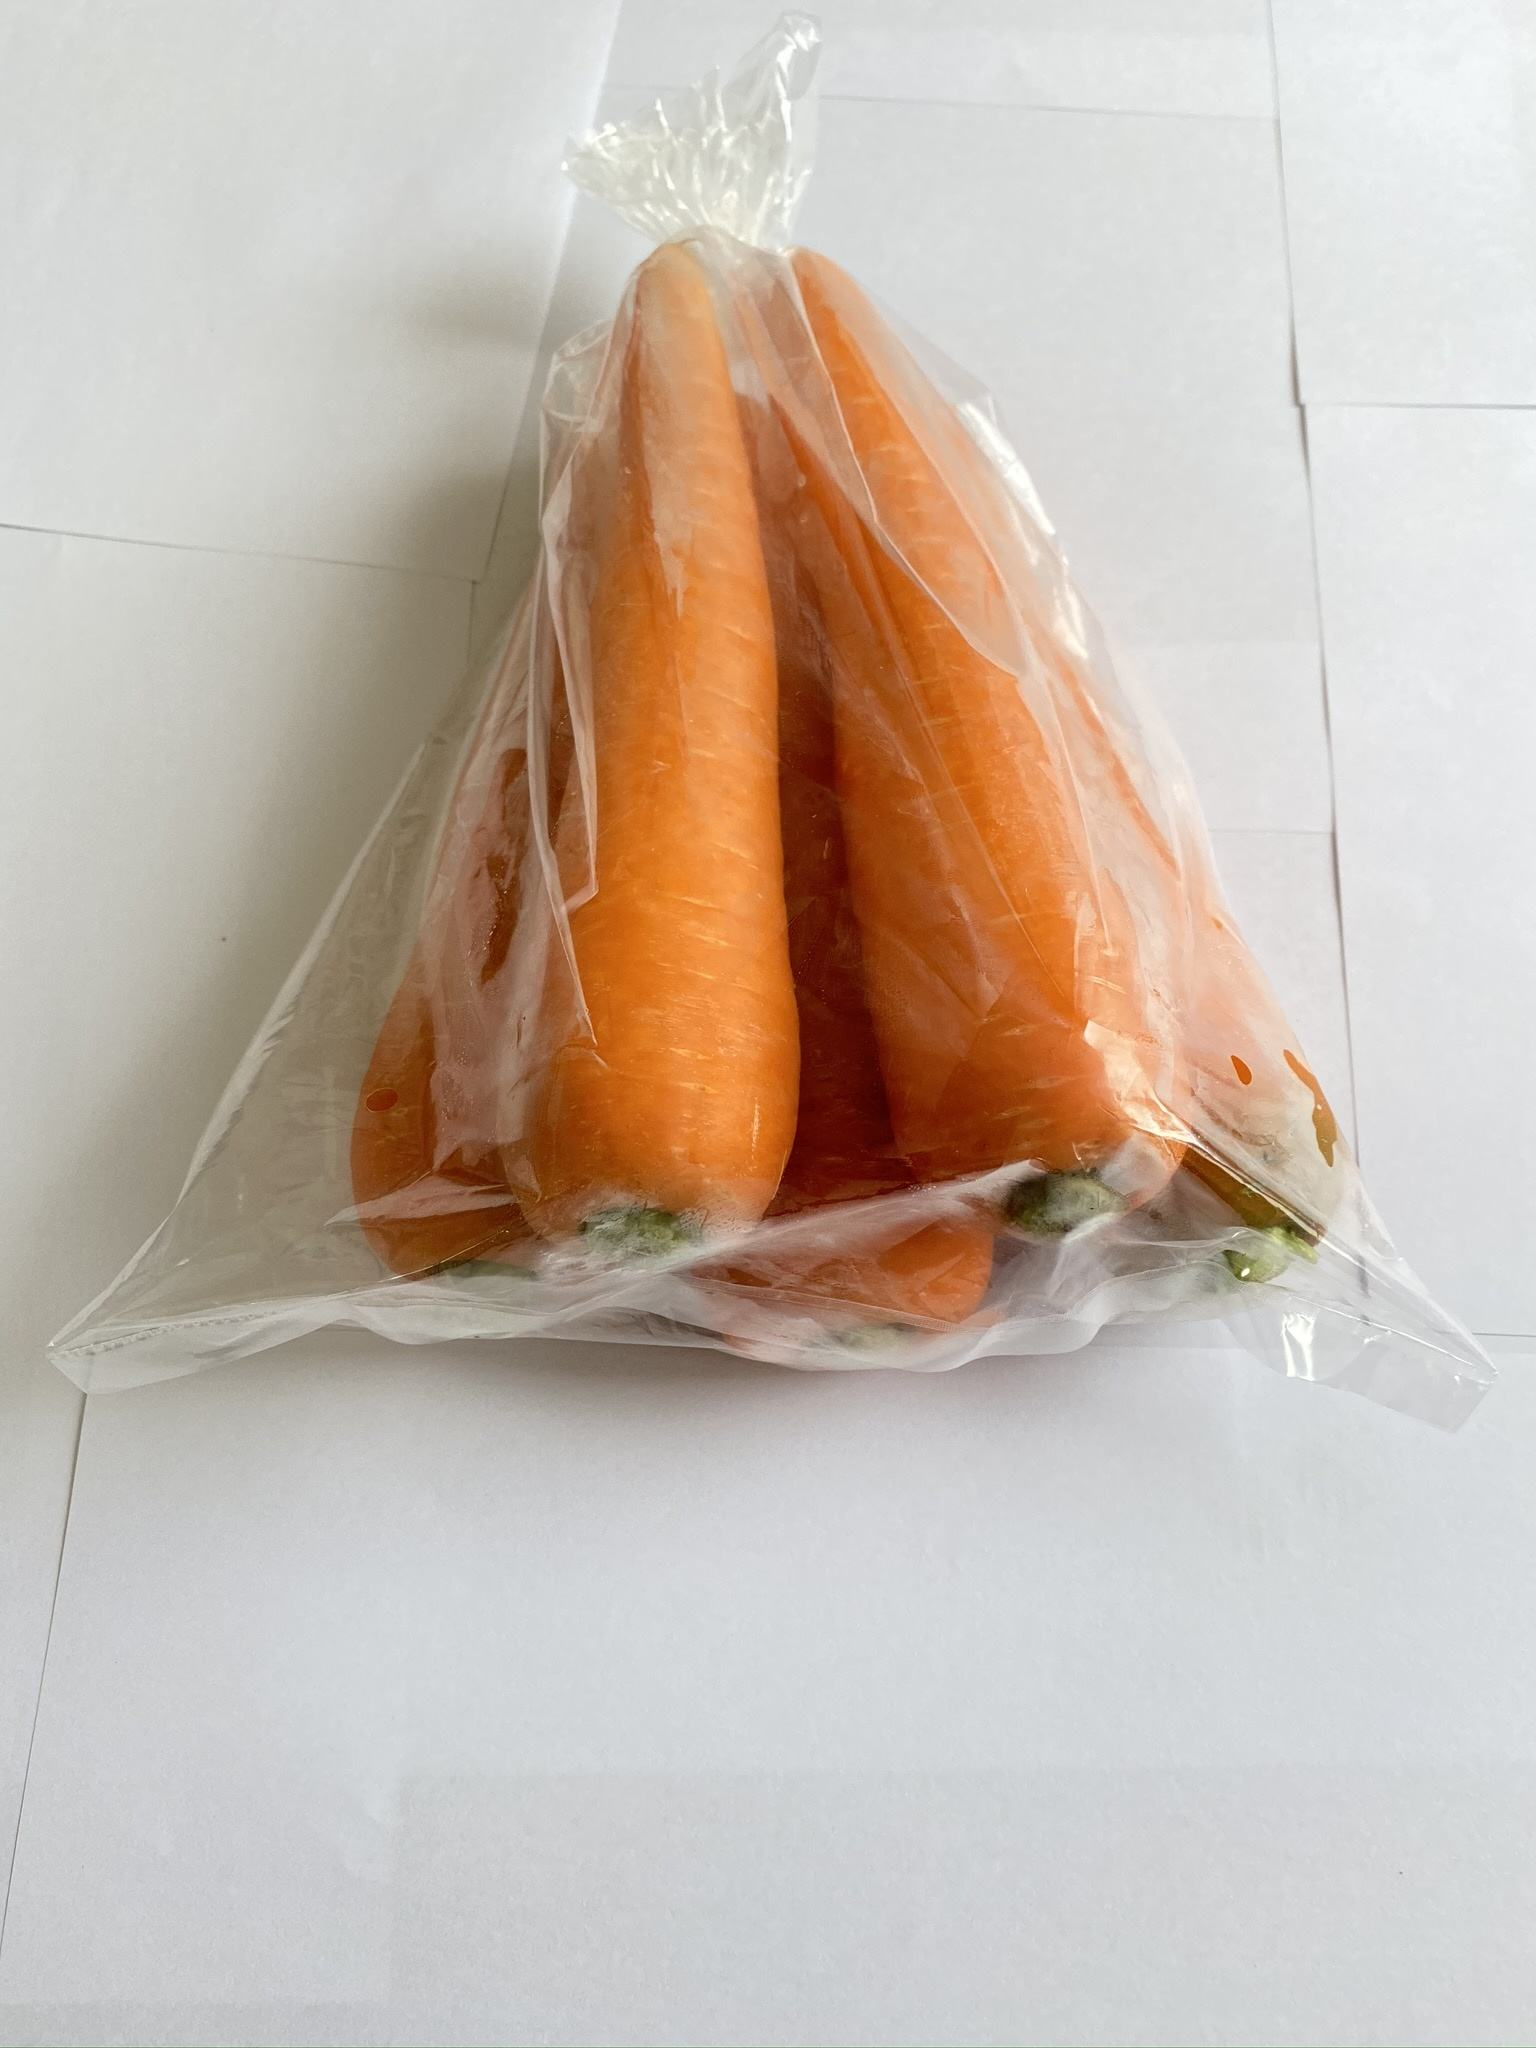 Refreshing And Crisp Shandong Carrots Exporters In China With Transportation Is Fast